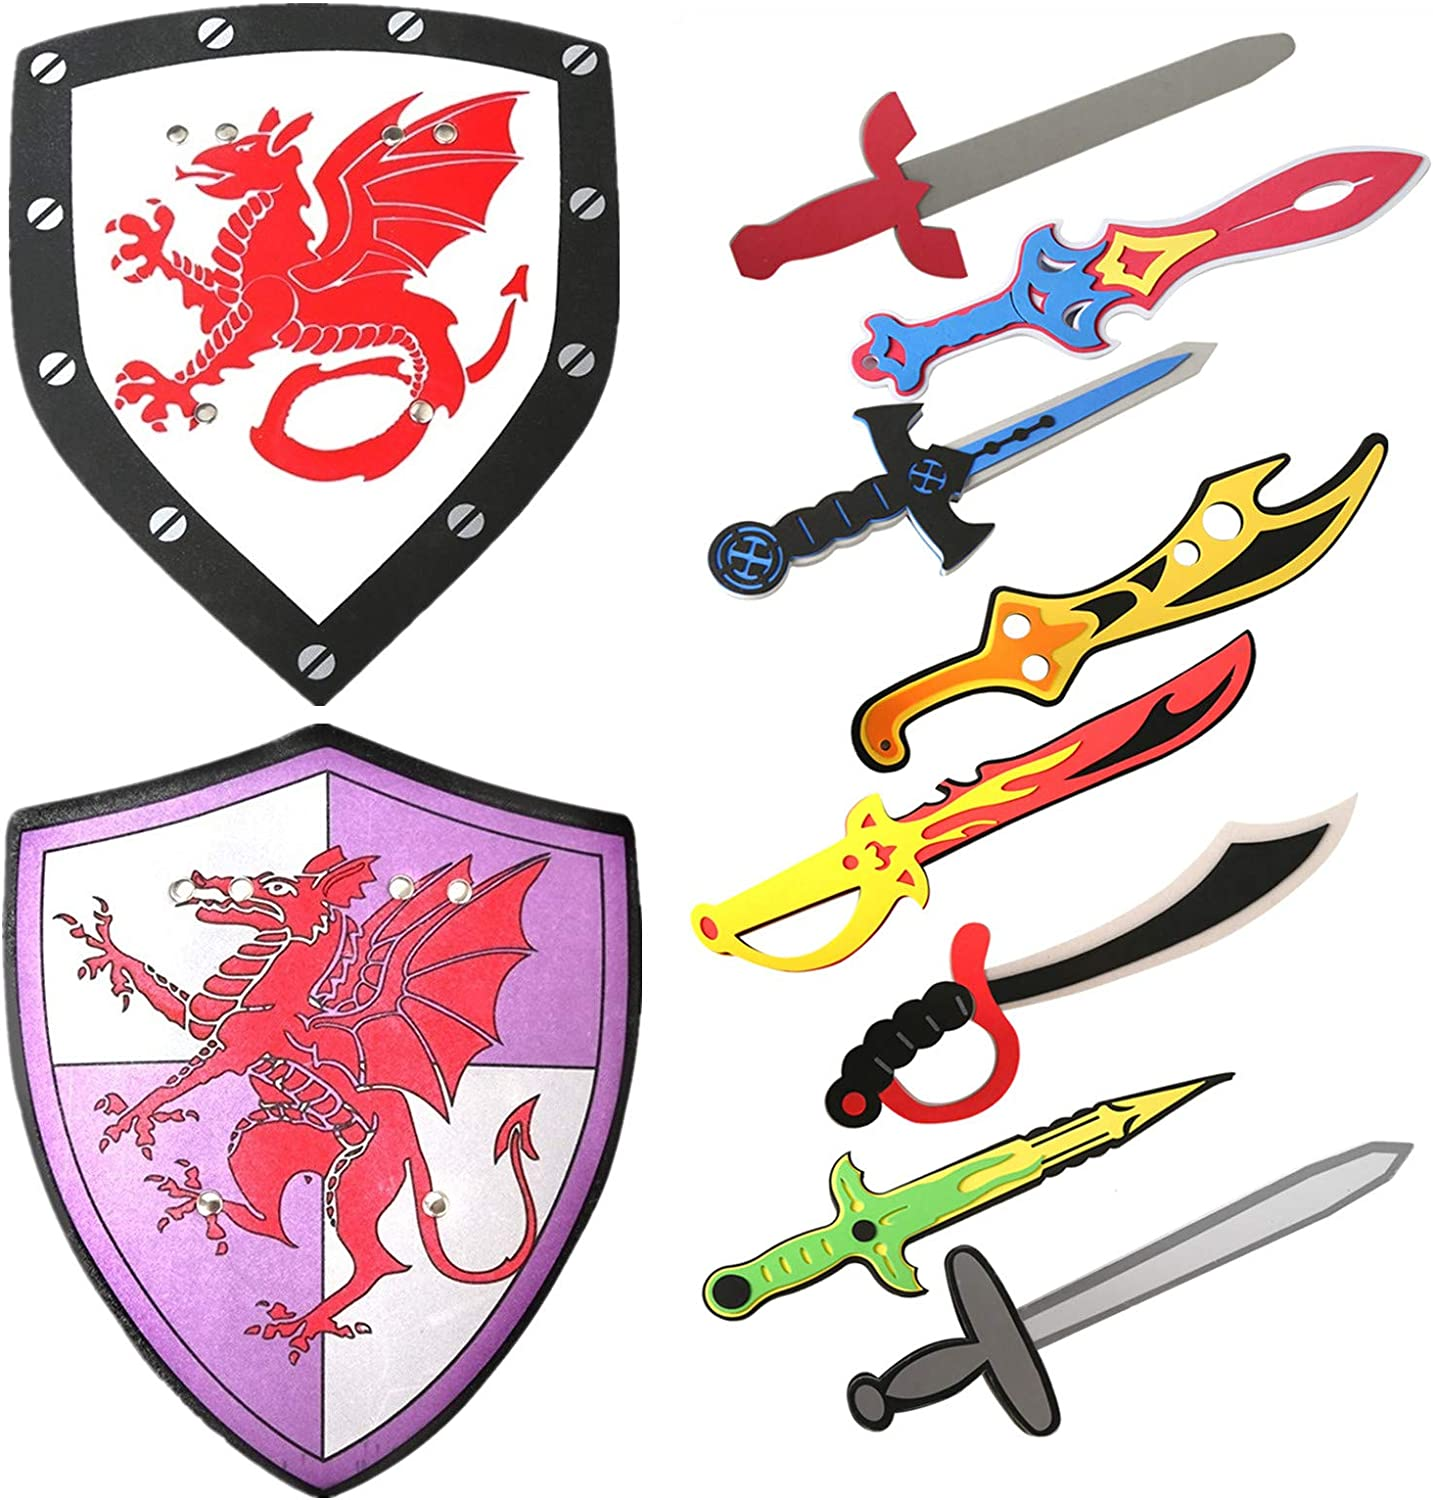 Foam Sword and Shield Playset Medieval Assorted Ninja Warrior Weapons Pretend Play Sword Toy Set for Kids